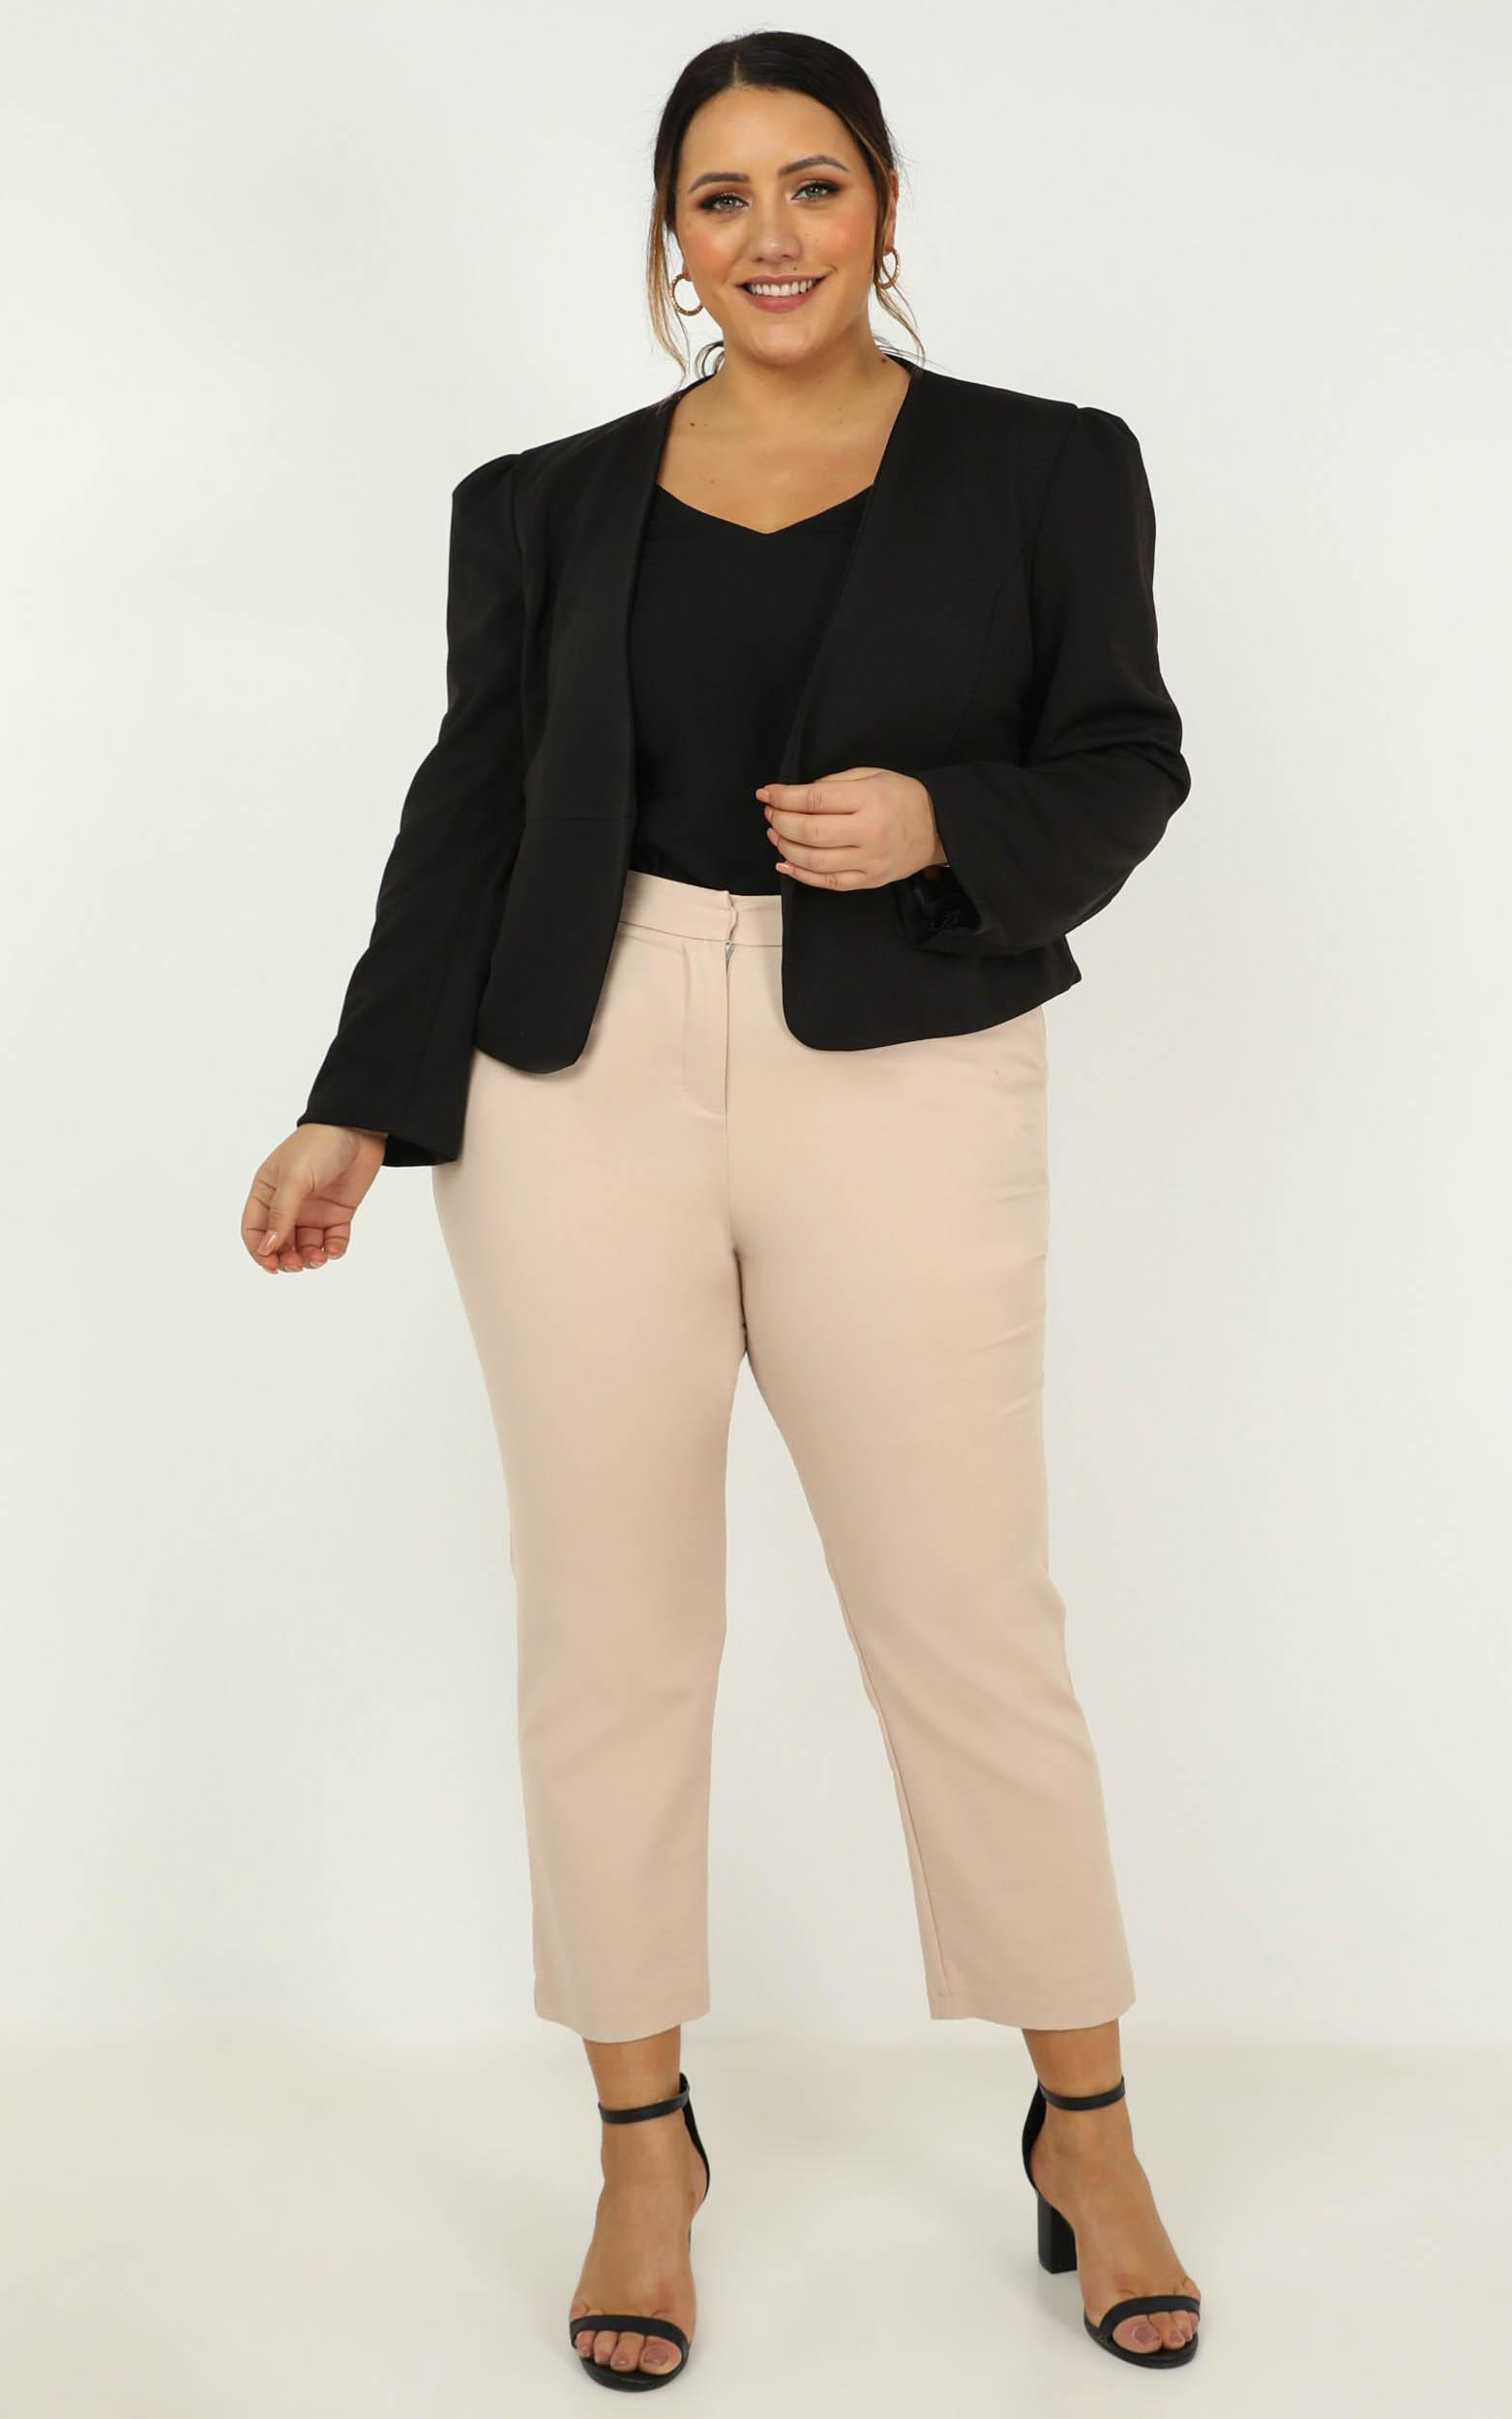 Meeting with You Blazer In black - 14 (XL), Black, hi-res image number null